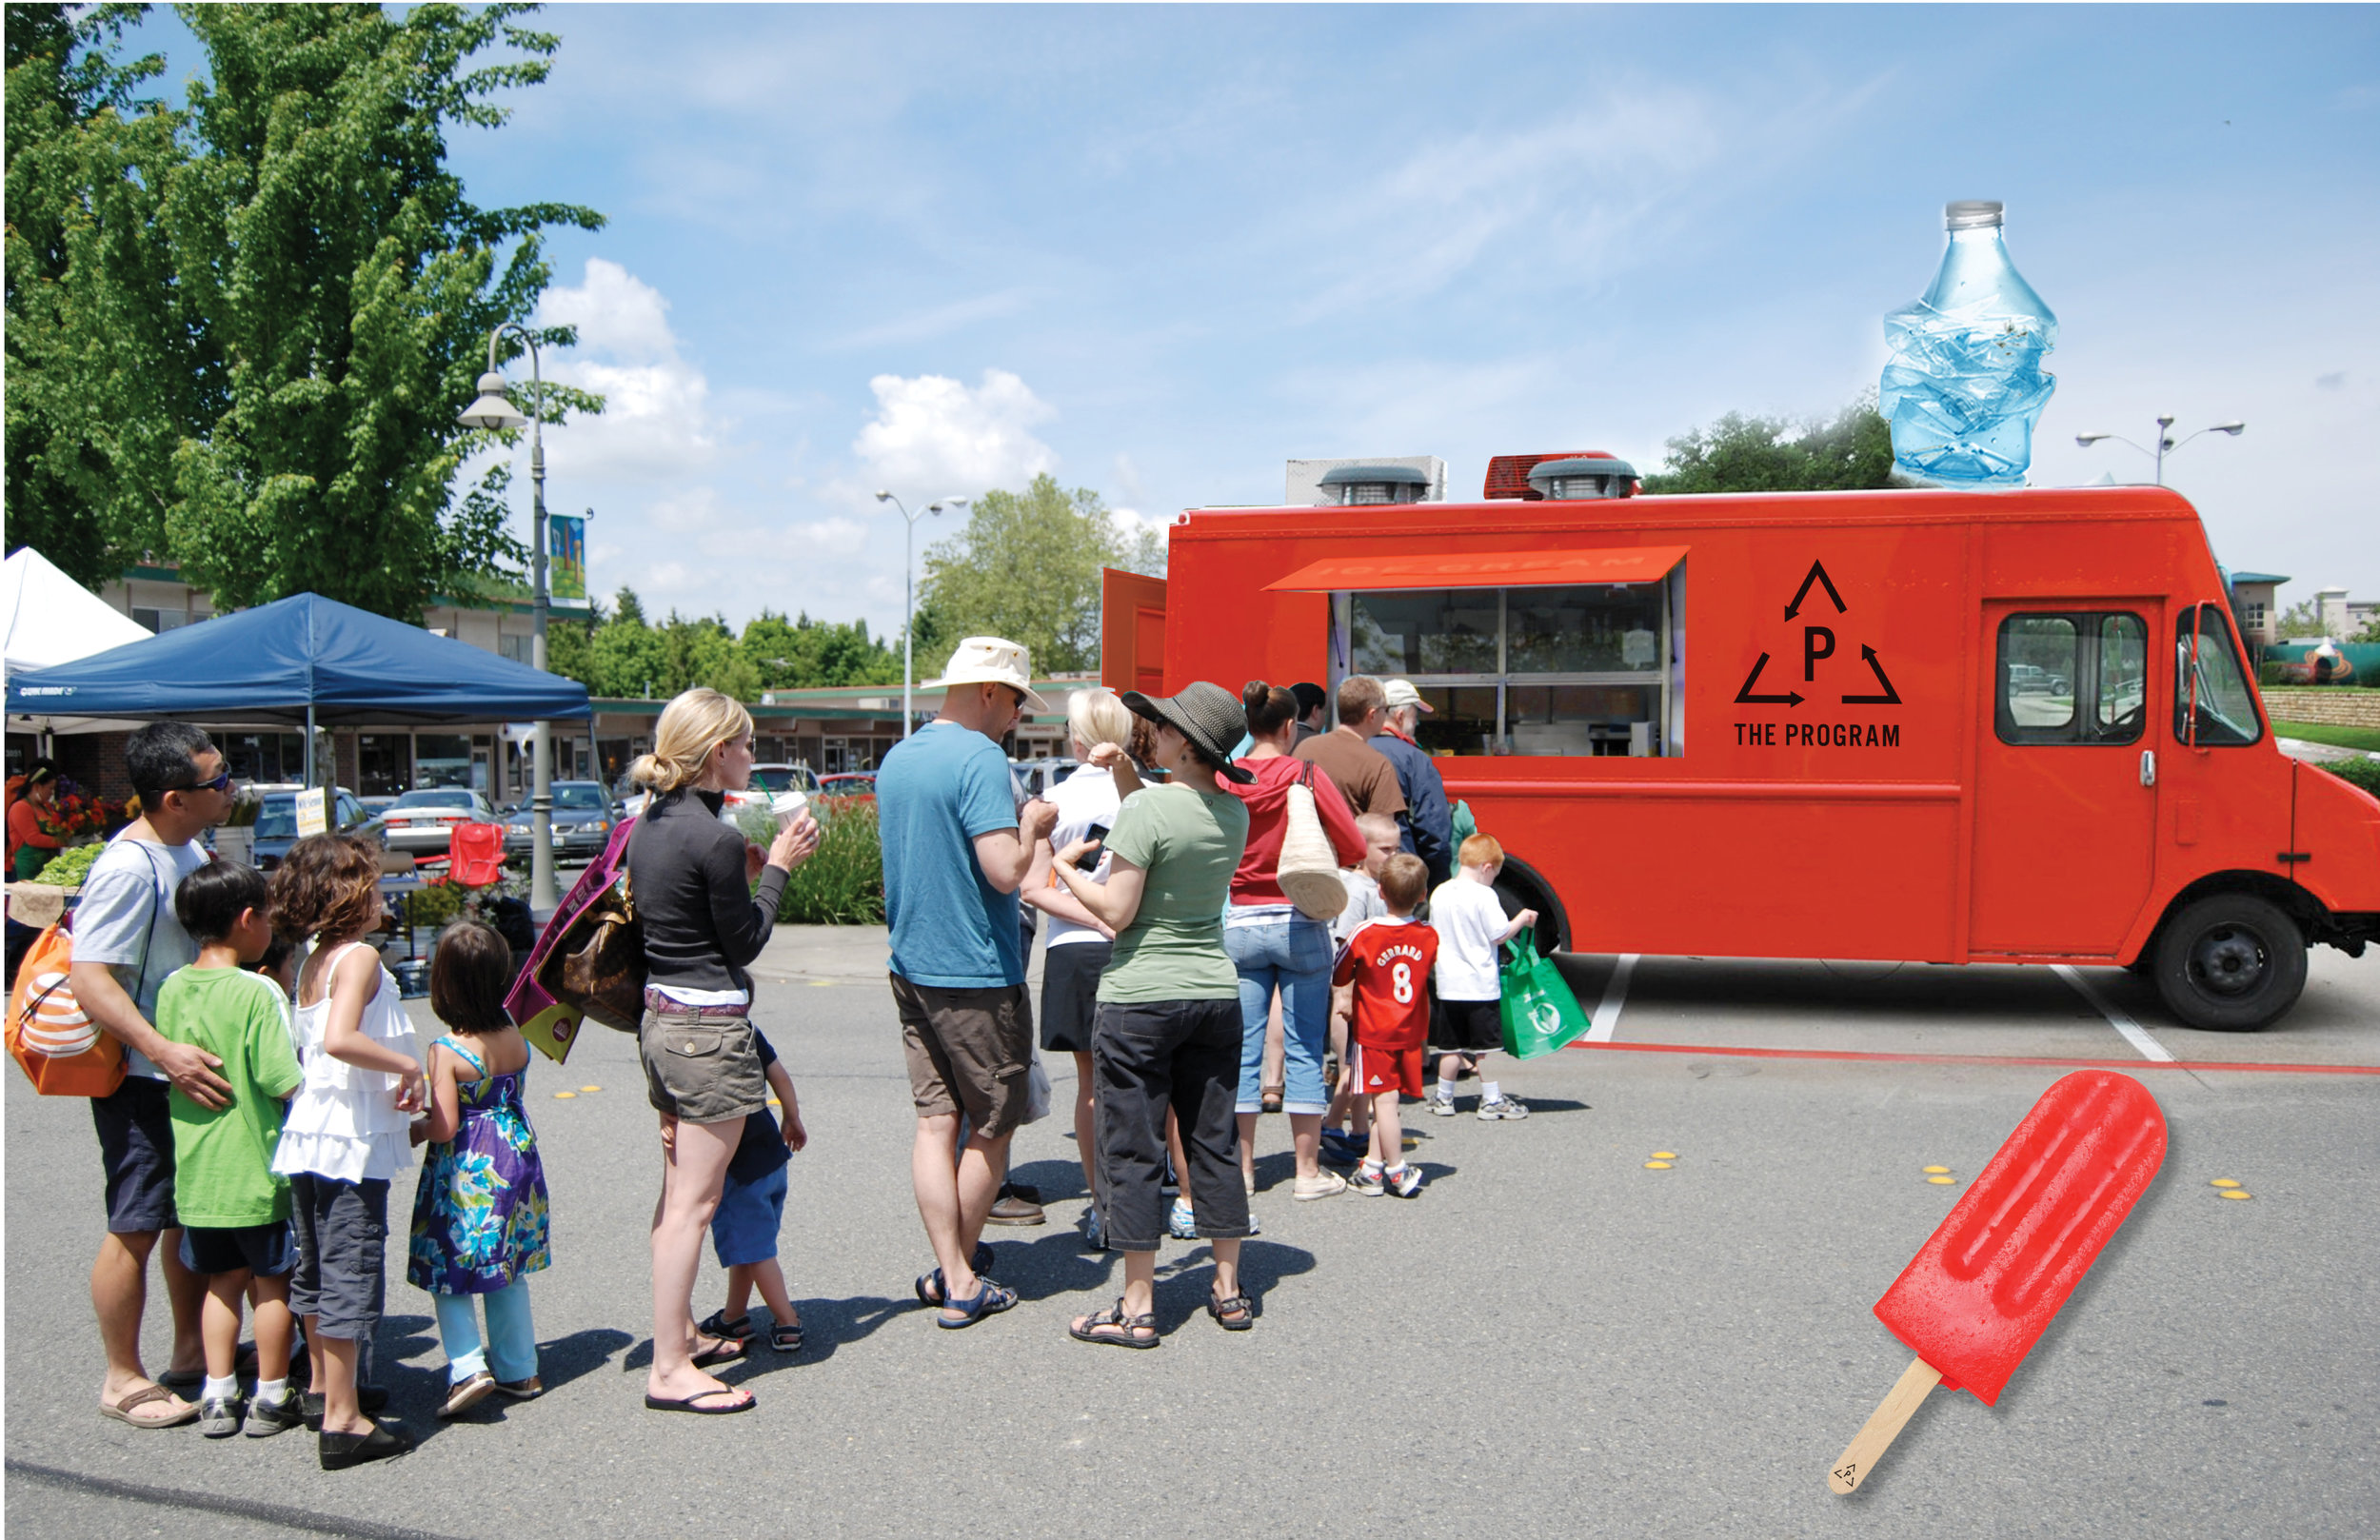 Children will be rewarded with an ice pop for recycling their garbage.